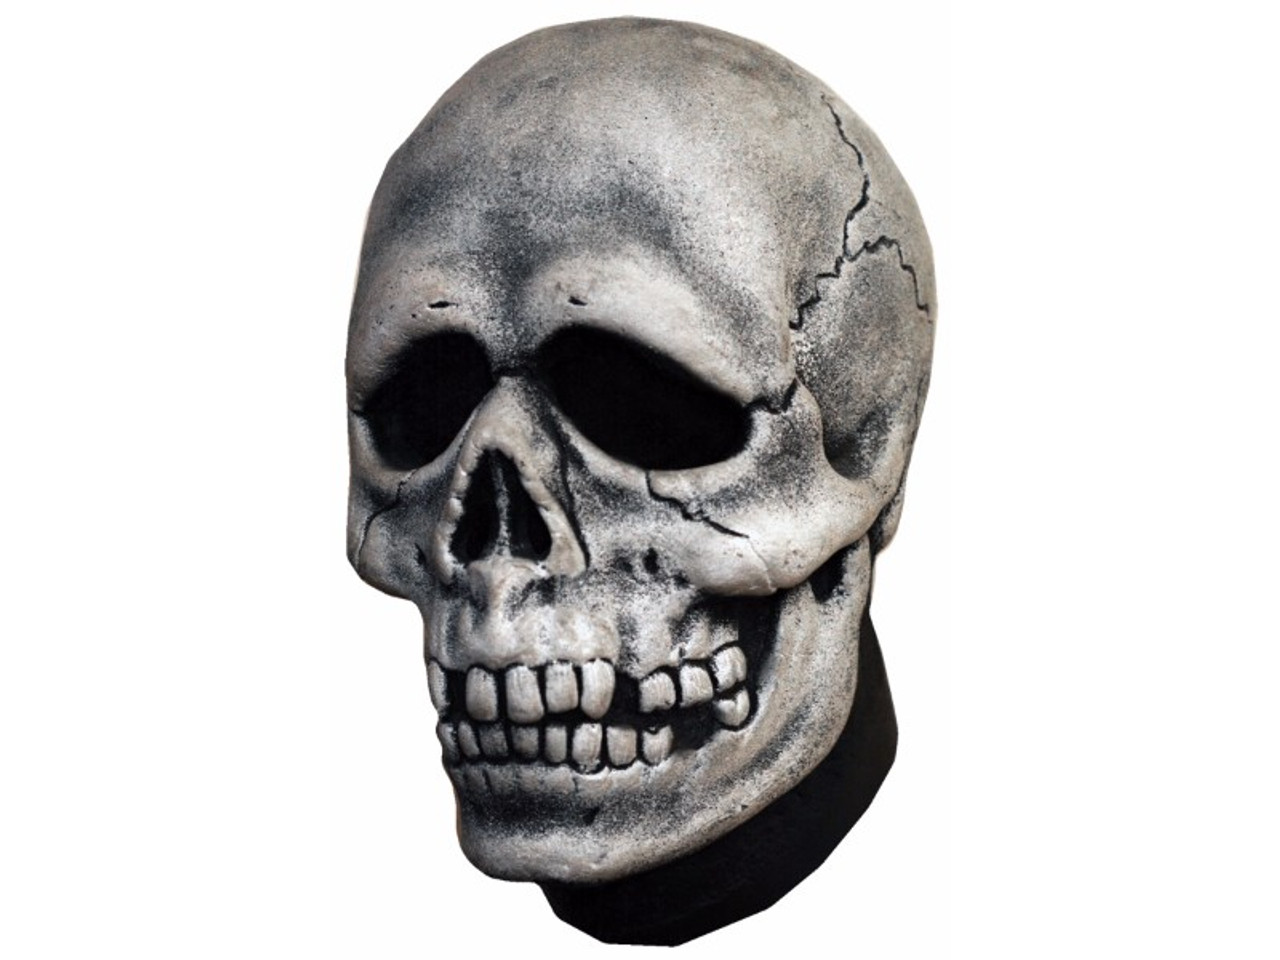 fd4c18296 Halloween III Skeleton Mask (Season Of The Witch) Trick or treat studios  and universal